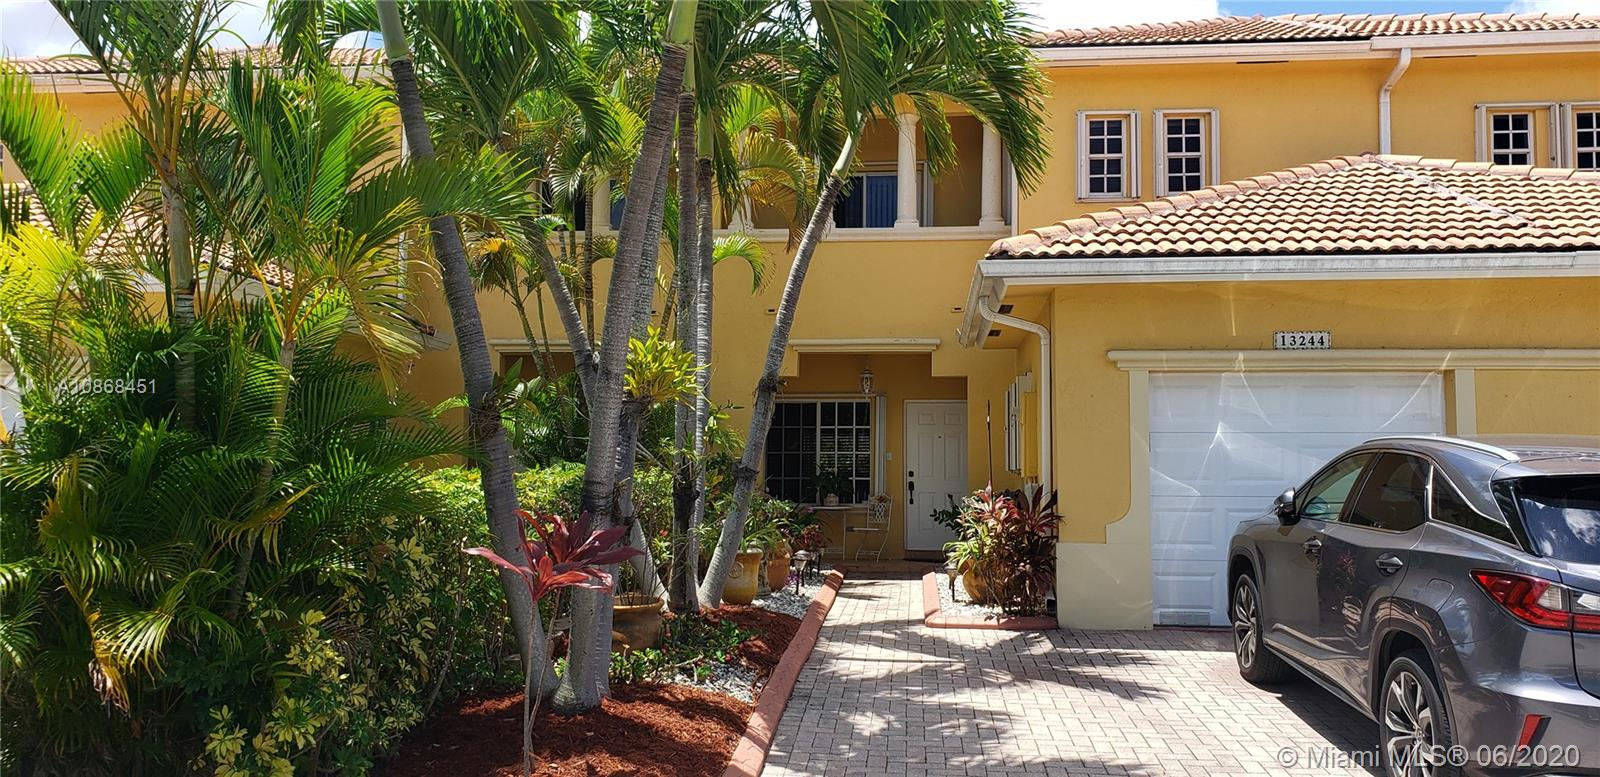 13244 SW 143rd Ter  For Sale A10868451, FL